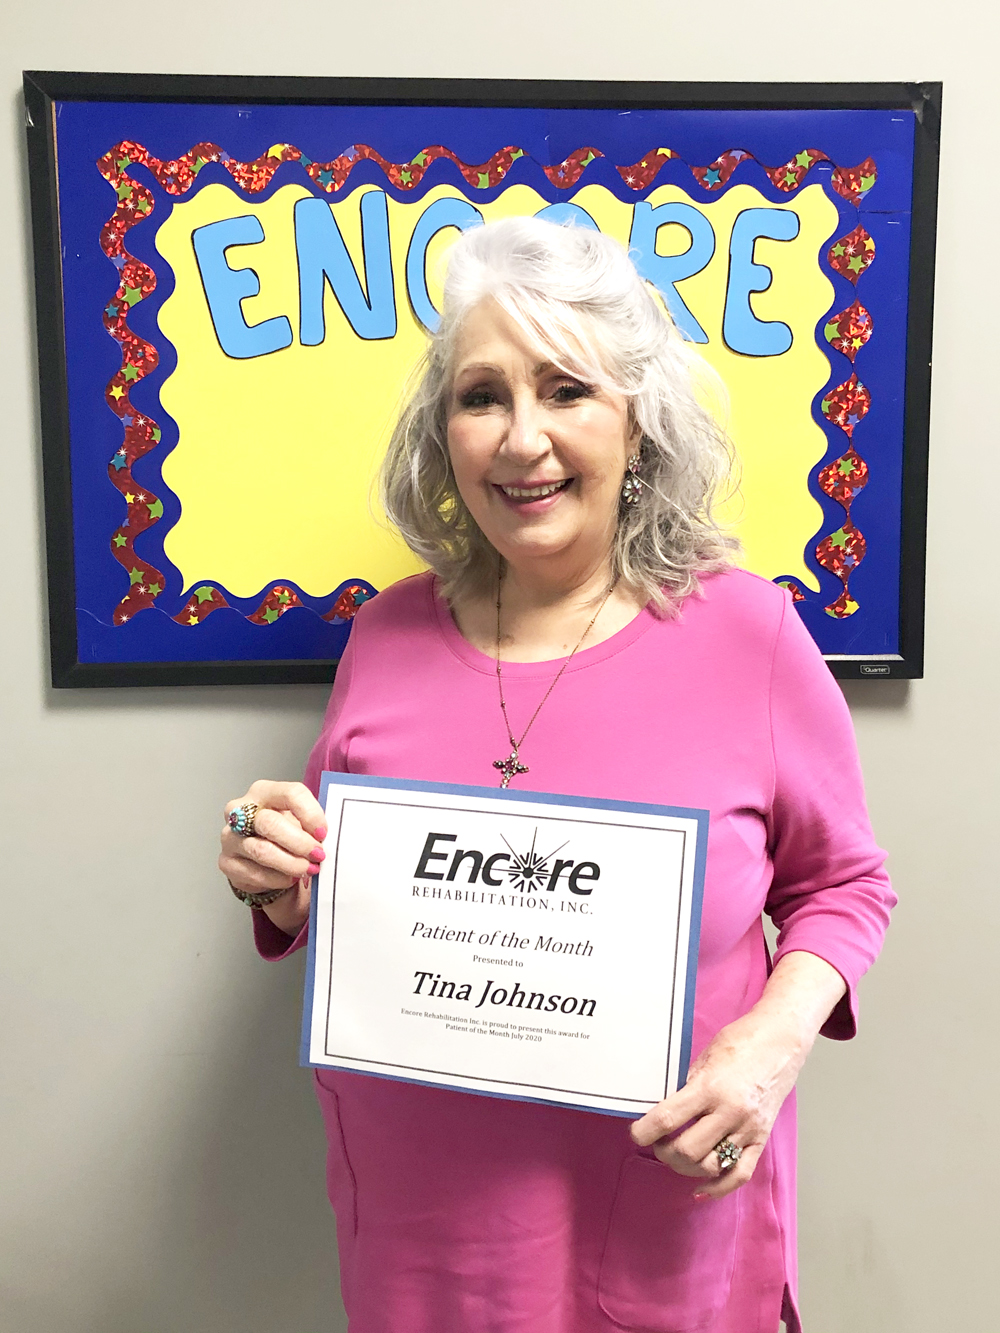 Tina Johnson is Occupational Therapy Patient of the Month for #EncoreRehab Dothan